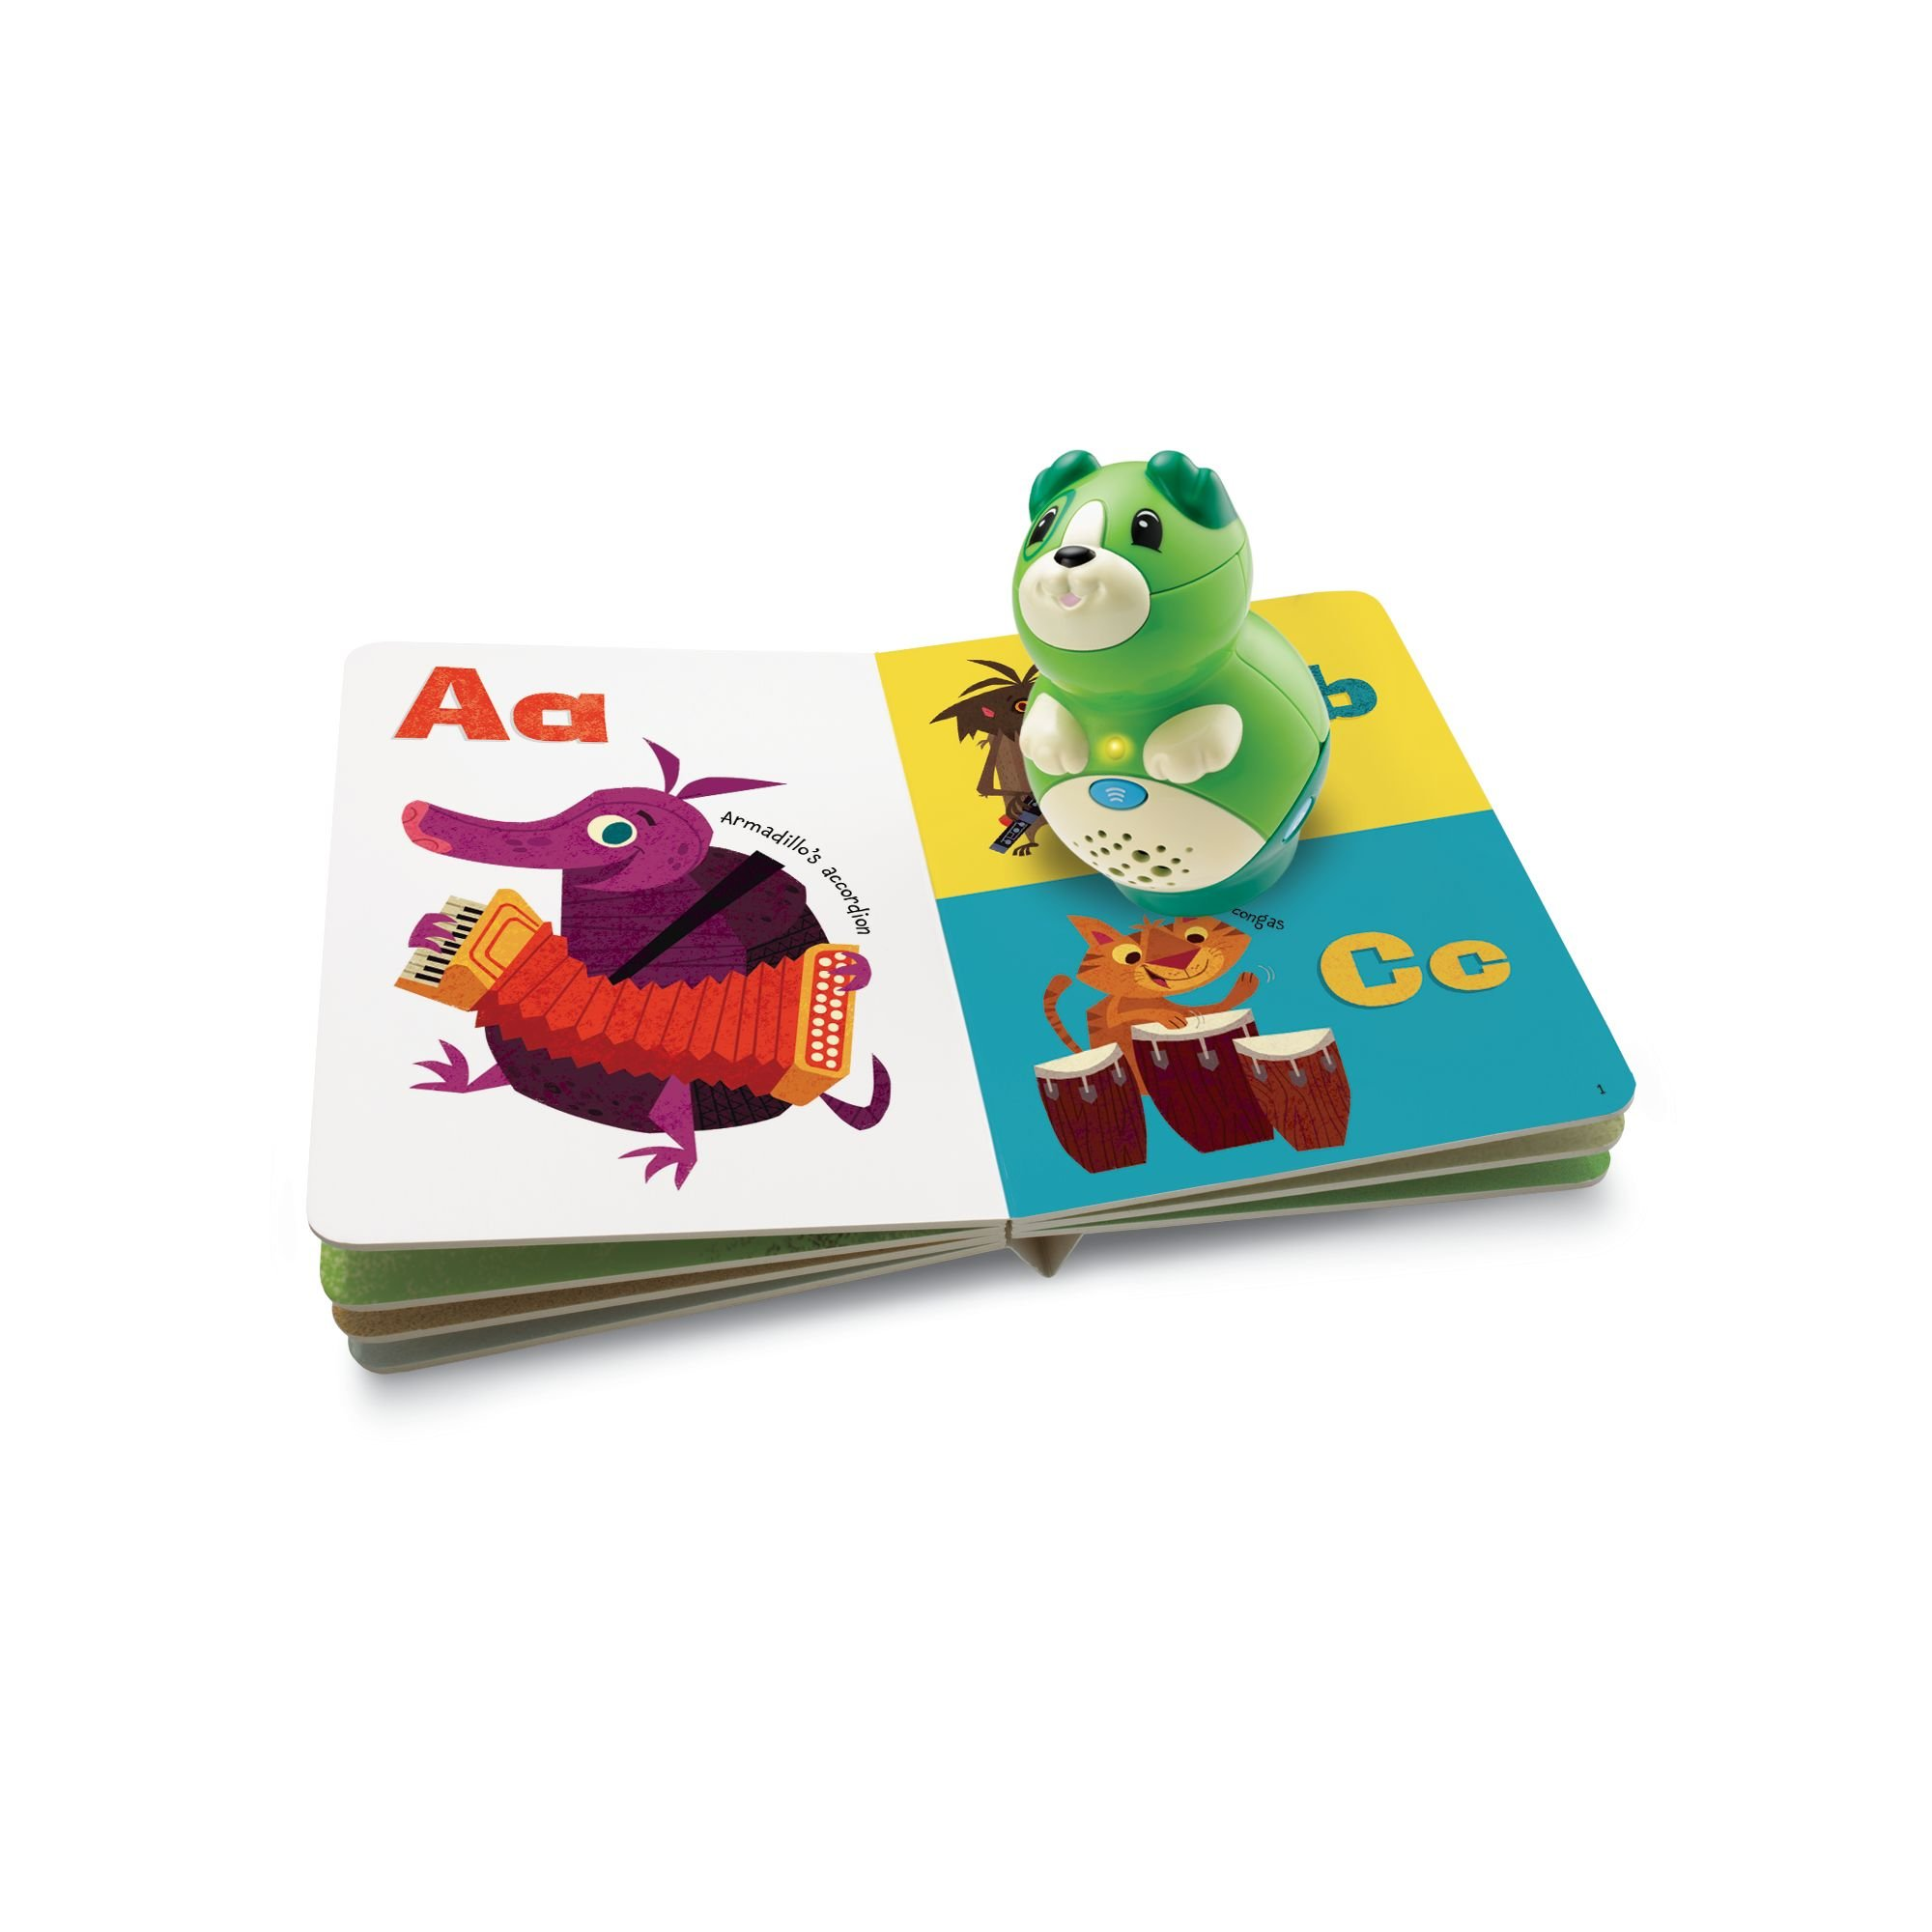 LeapFrog LeapReader Junior Book: ABC Animal Orchestra (works with Tag) by LeapFrog (Image #2)